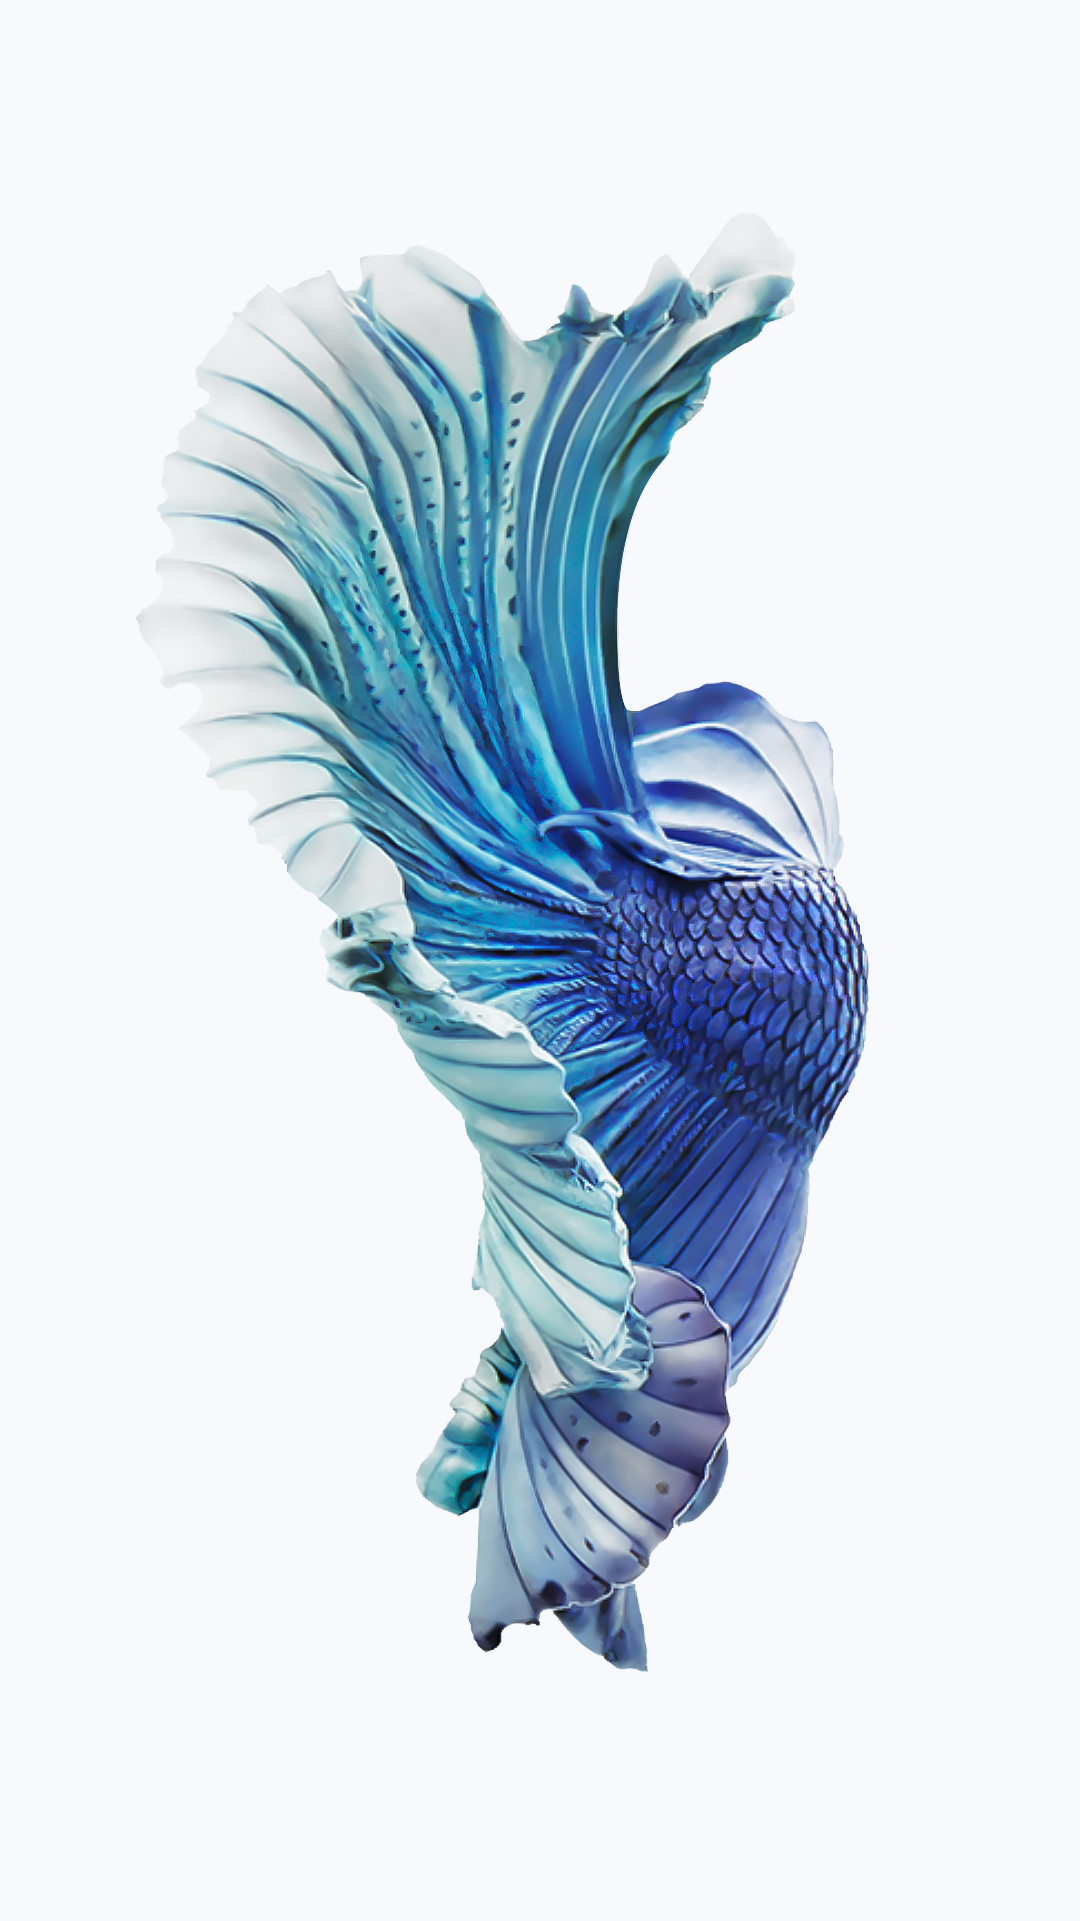 iphone 6s fish wallpapers (75 images)1080x1921 iphone 6s silver blue fish wallpaper png (1080Ã